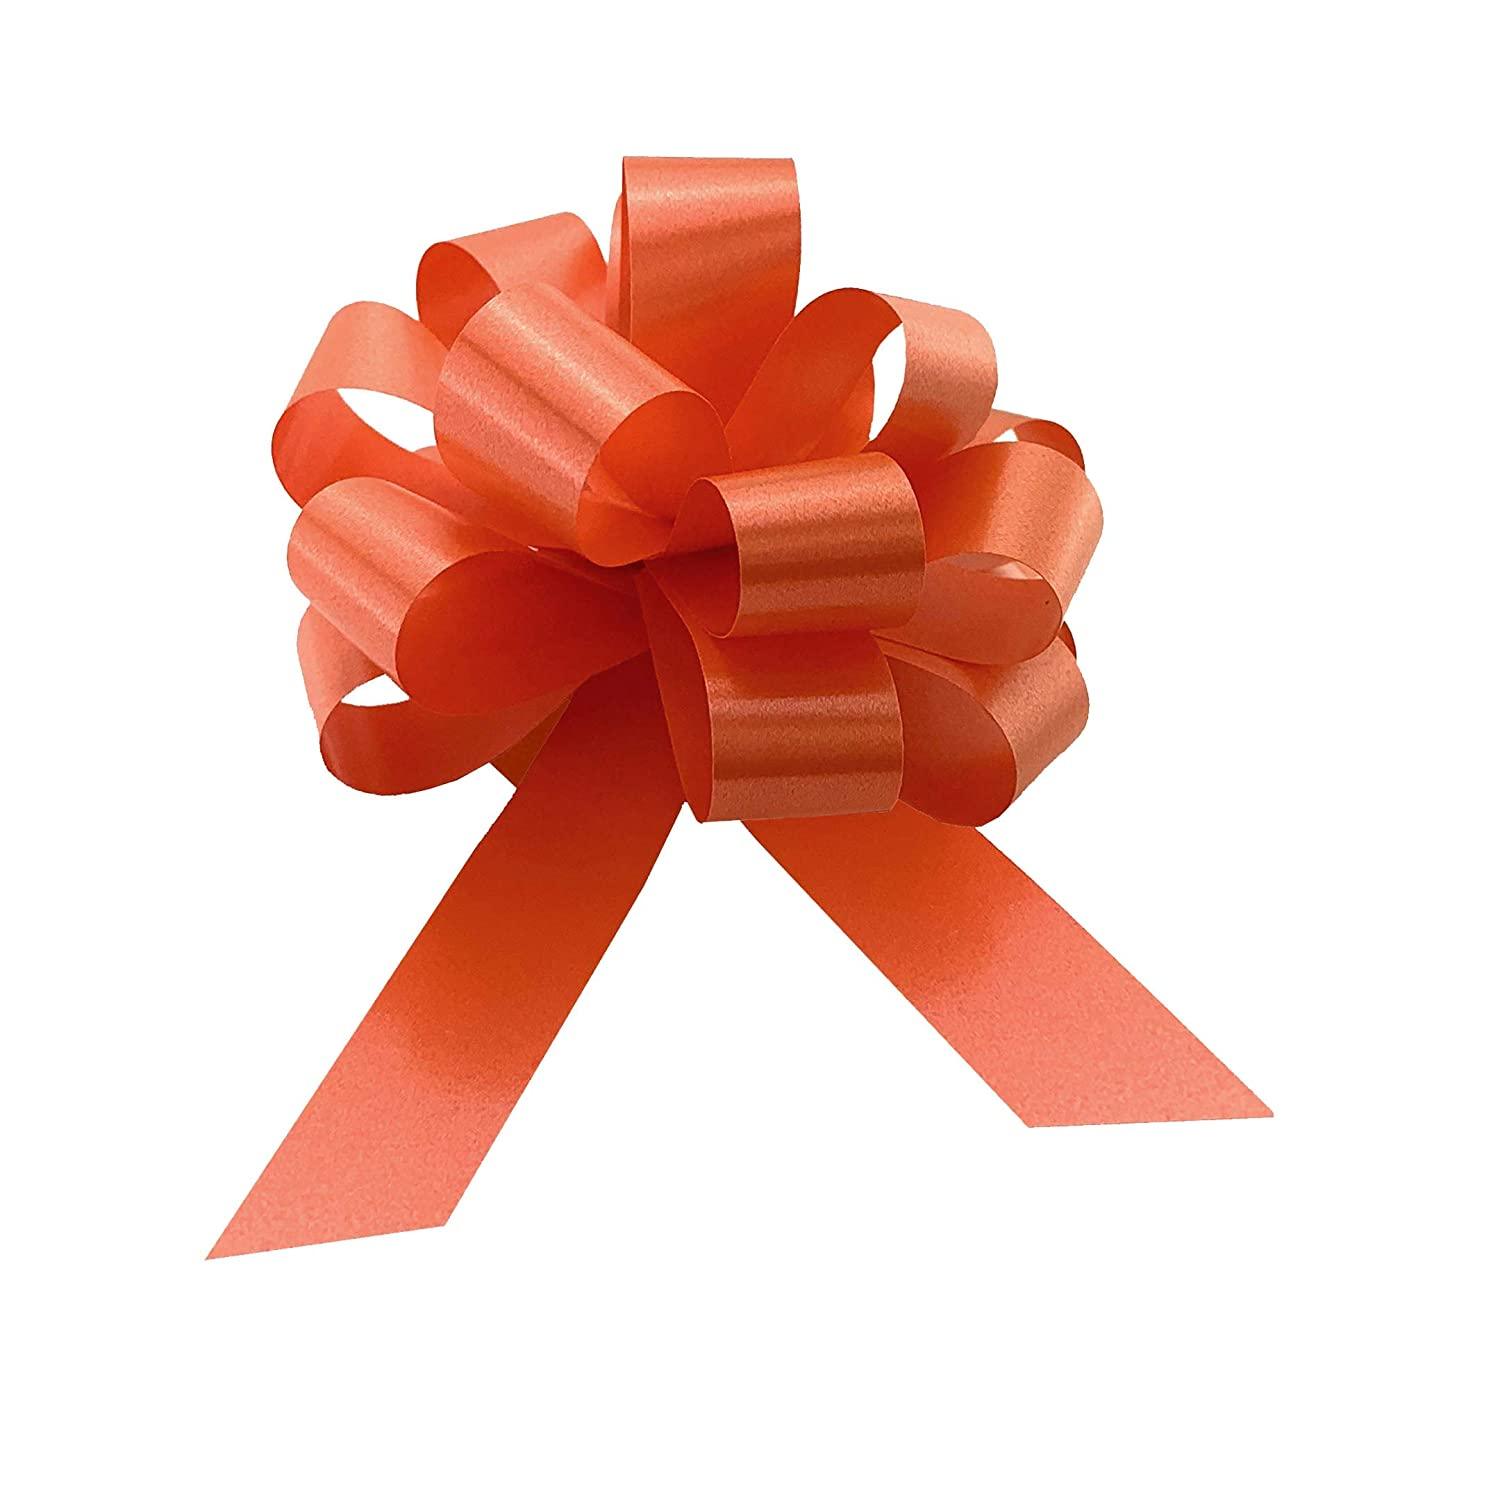 Birthday Fundraiser Gift Wrapping Ribbon Bow Decorations for Presents 4 in Orange Satin Easter Pull Bows Wide Mothers Day 10 cm Thanksgiving Halloween Set of 50 Christmas Fathers Day